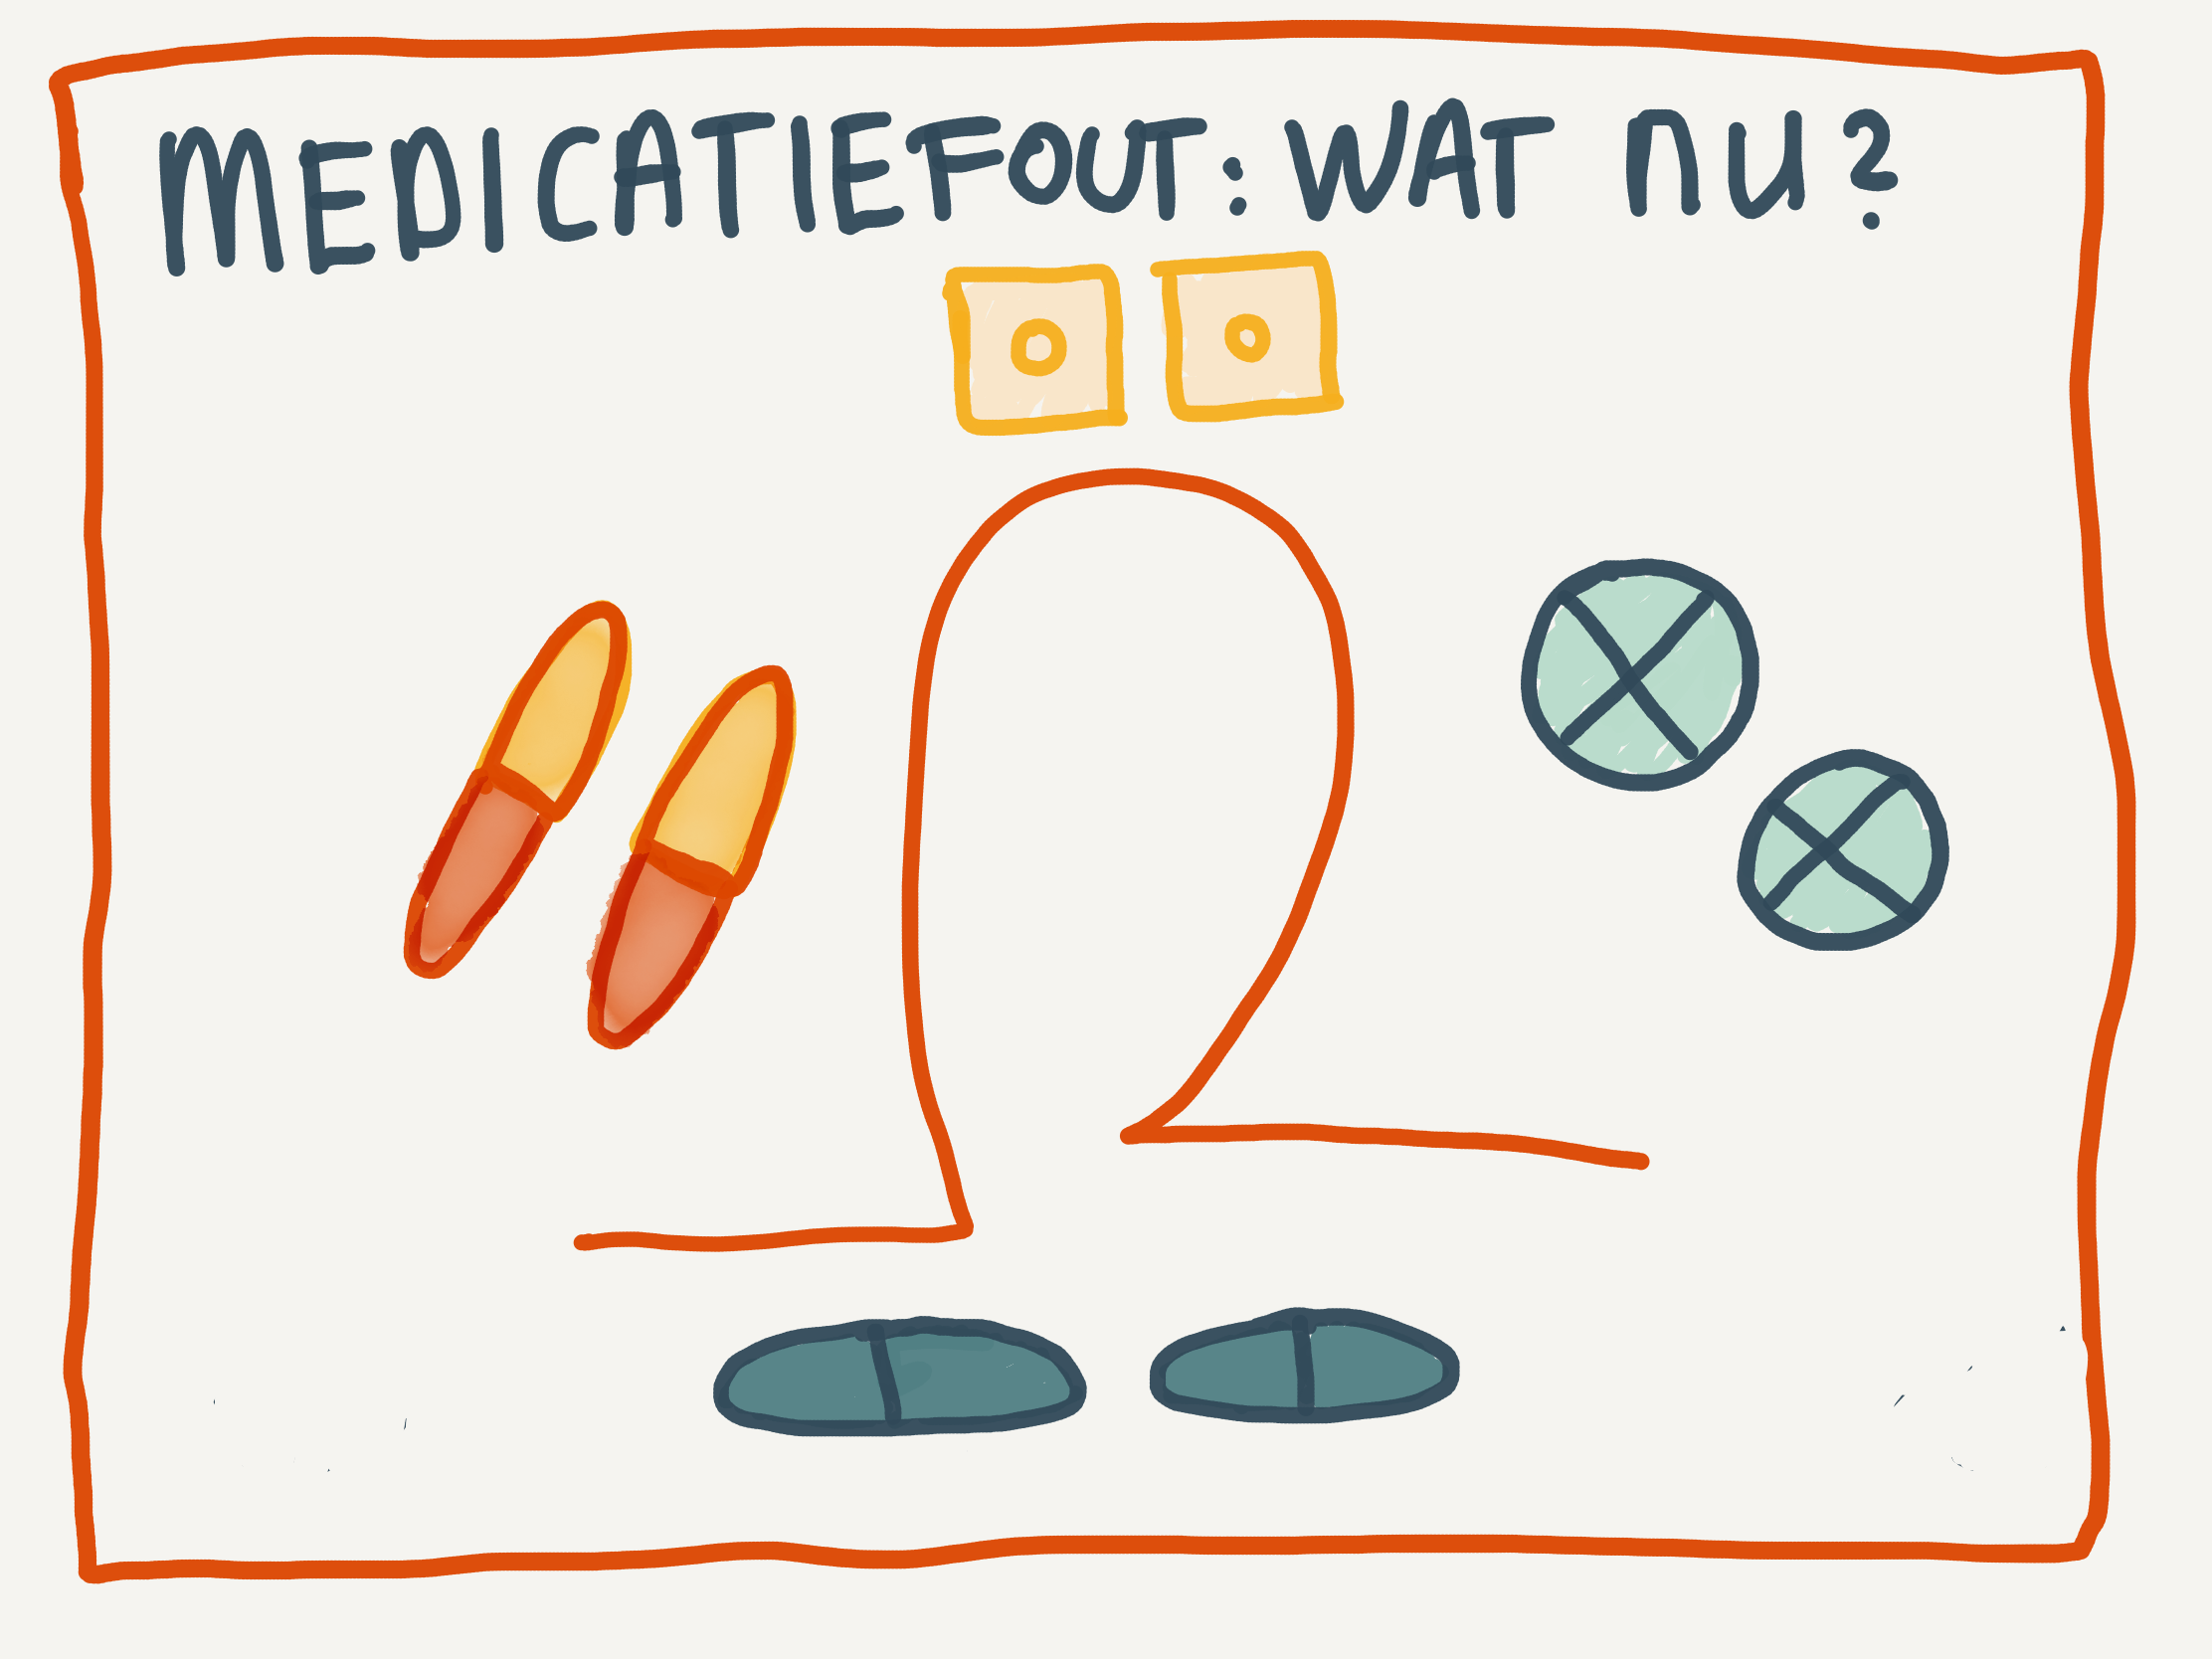 Medicatiefout: wat nu?